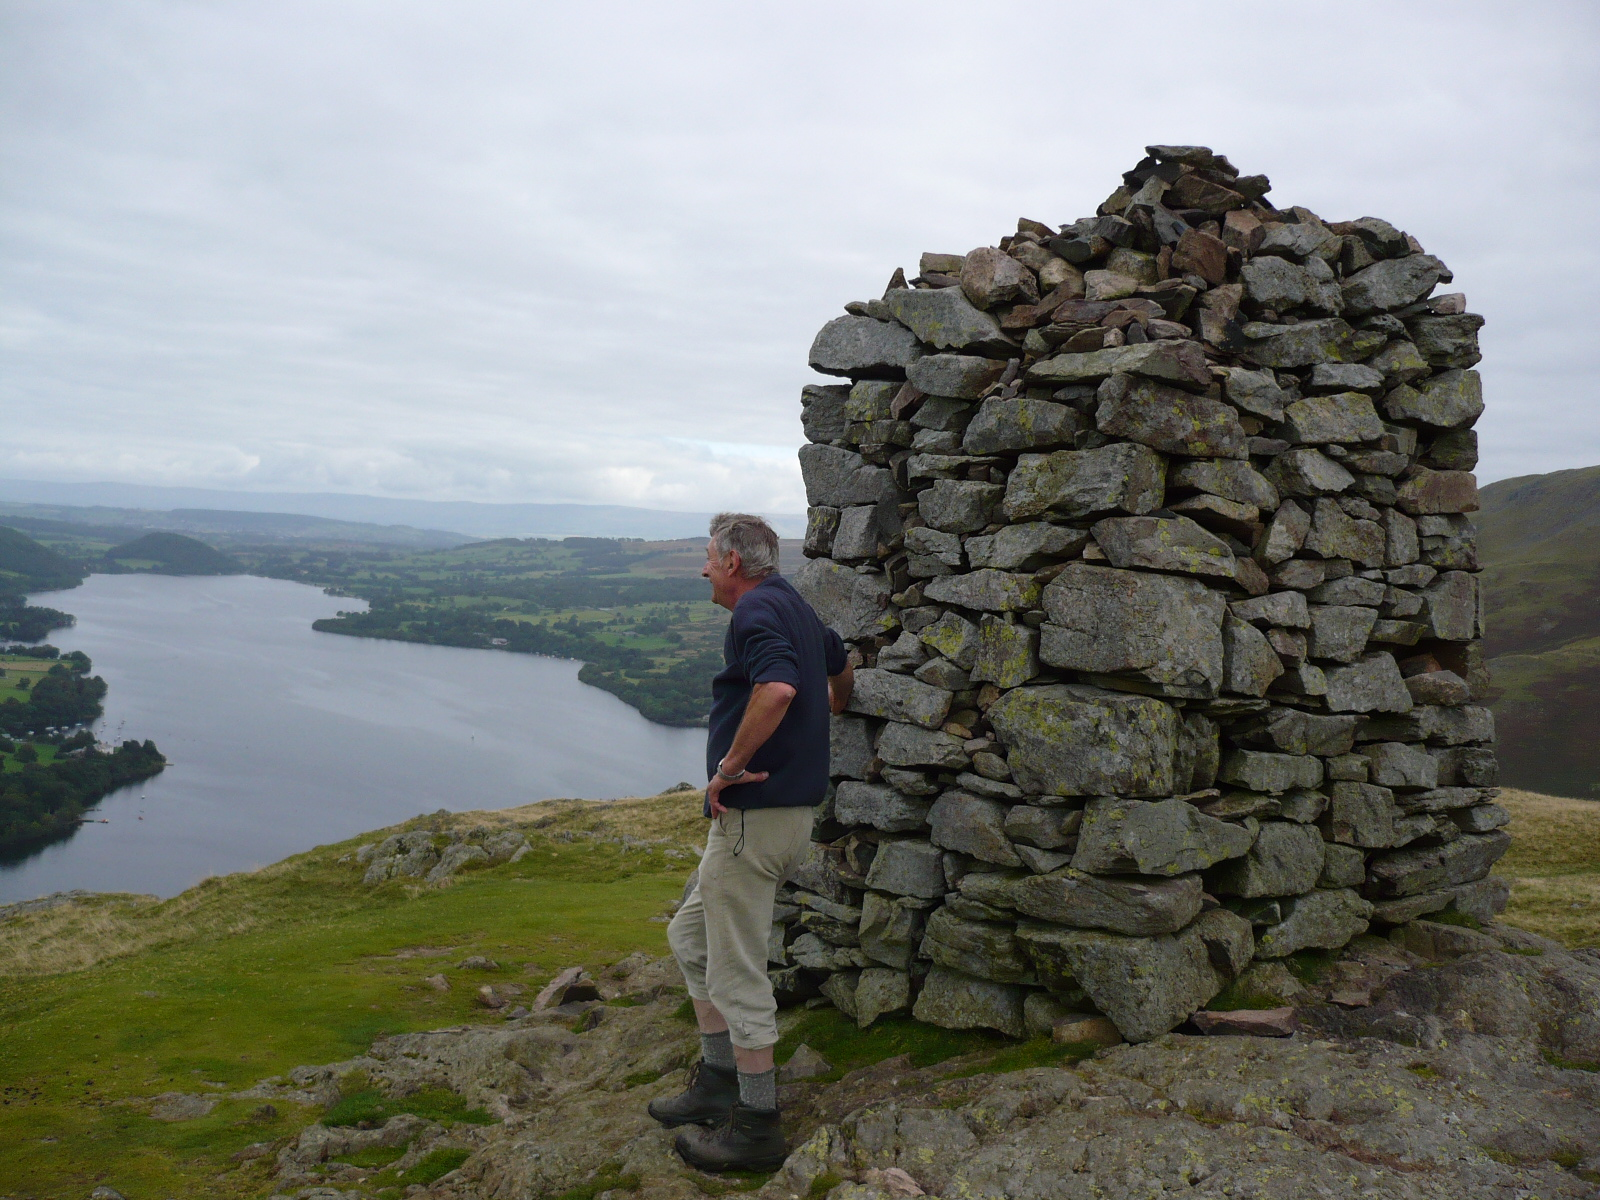 Hartsop hall cottages 171 walking holiday cottages walking - Group Member Geoff At The Cairn On Ldw 213